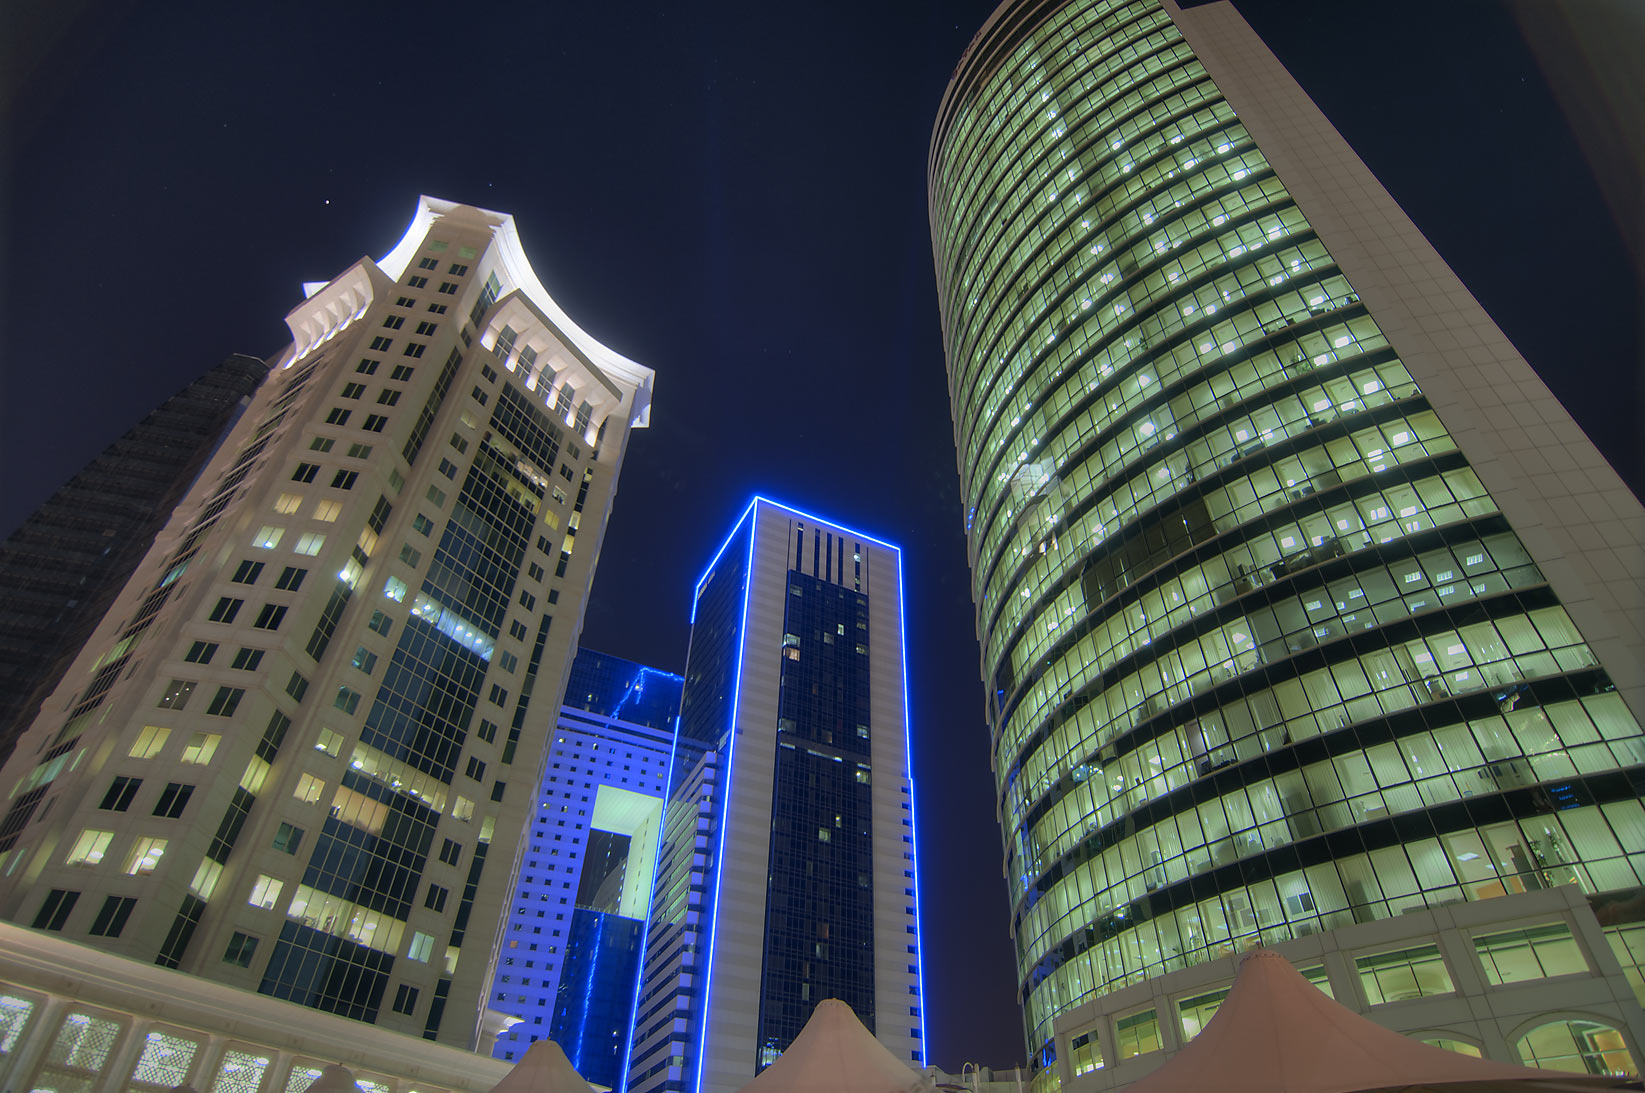 Al Qassar, Ezdan Hotel, and Olympic Tower in West Bay. Doha, Qatar